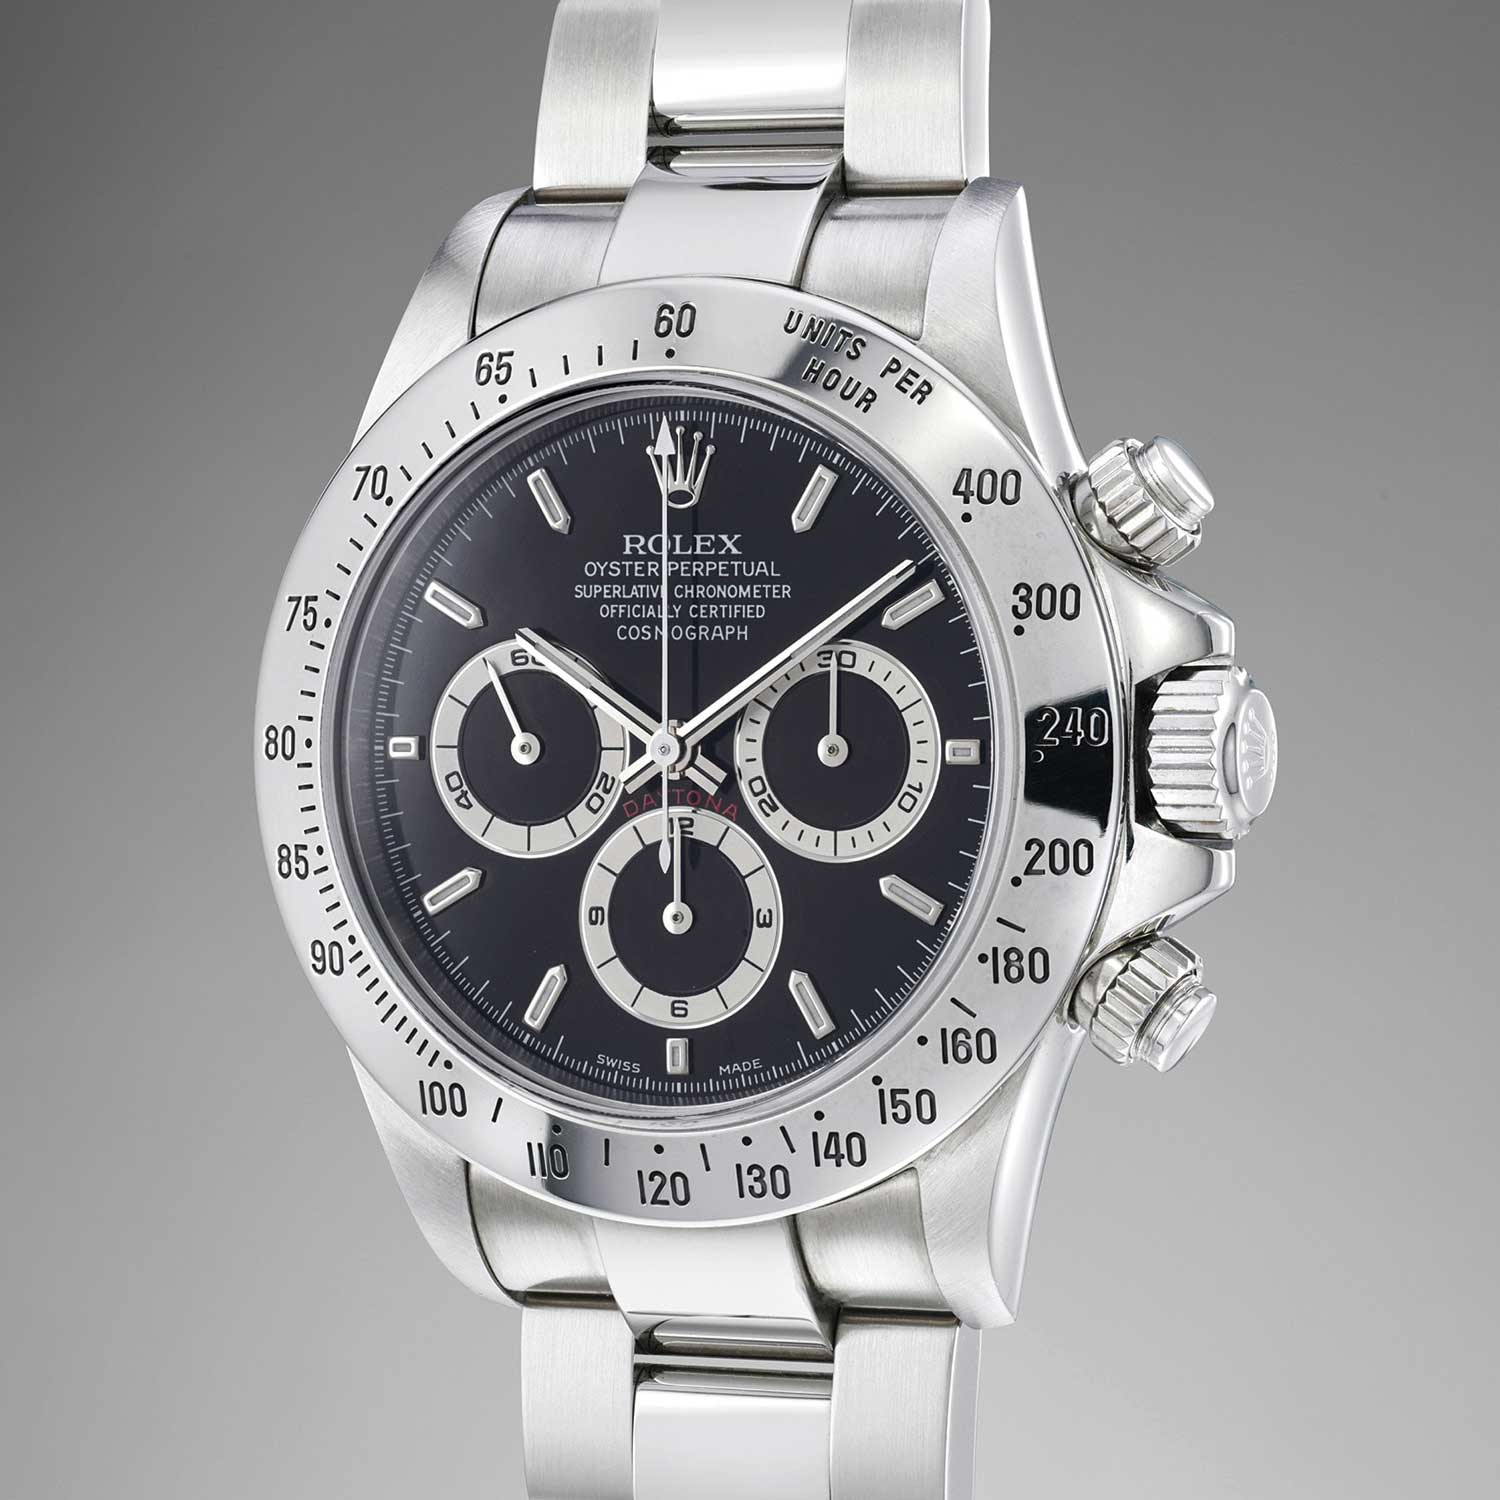 Self-wind Daytona ref. 16520 (Image: phillips.com)